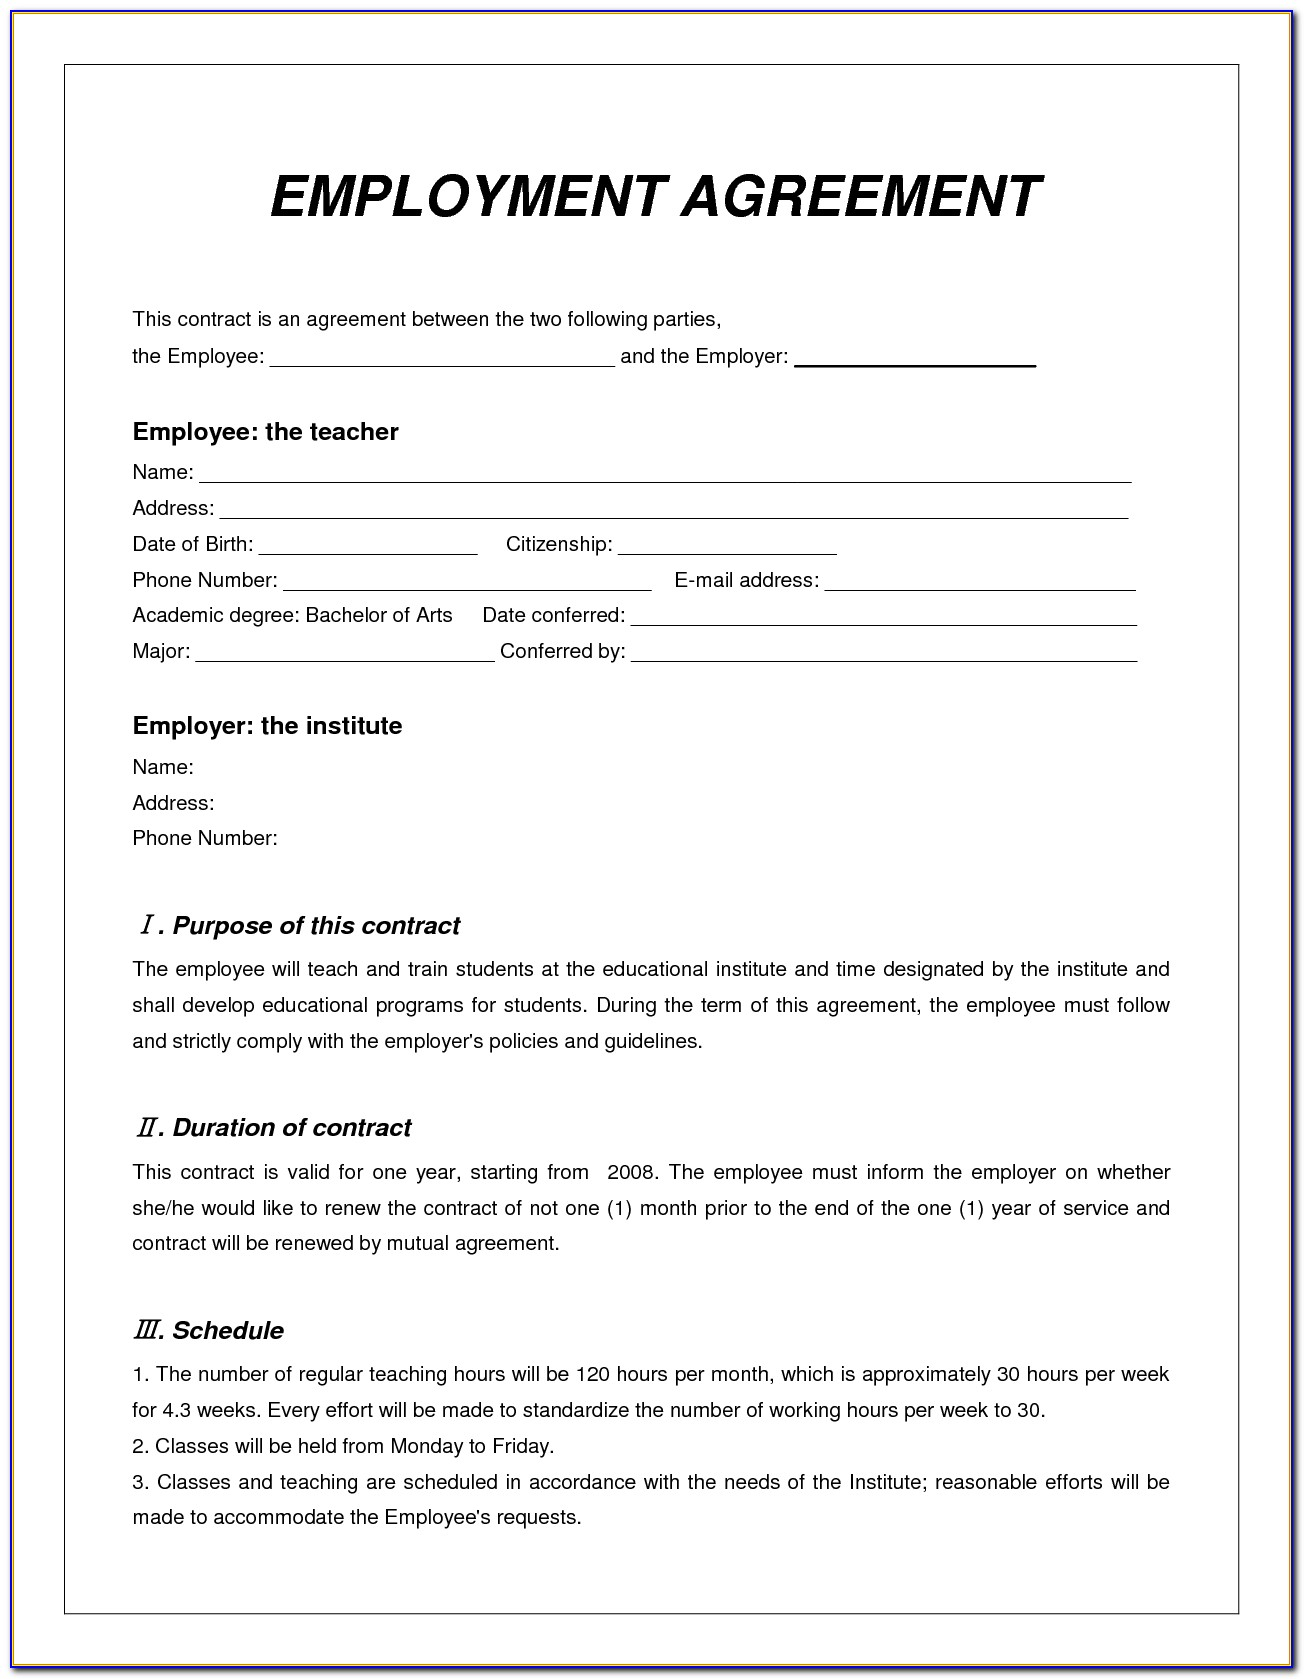 Employee Agreement Templates